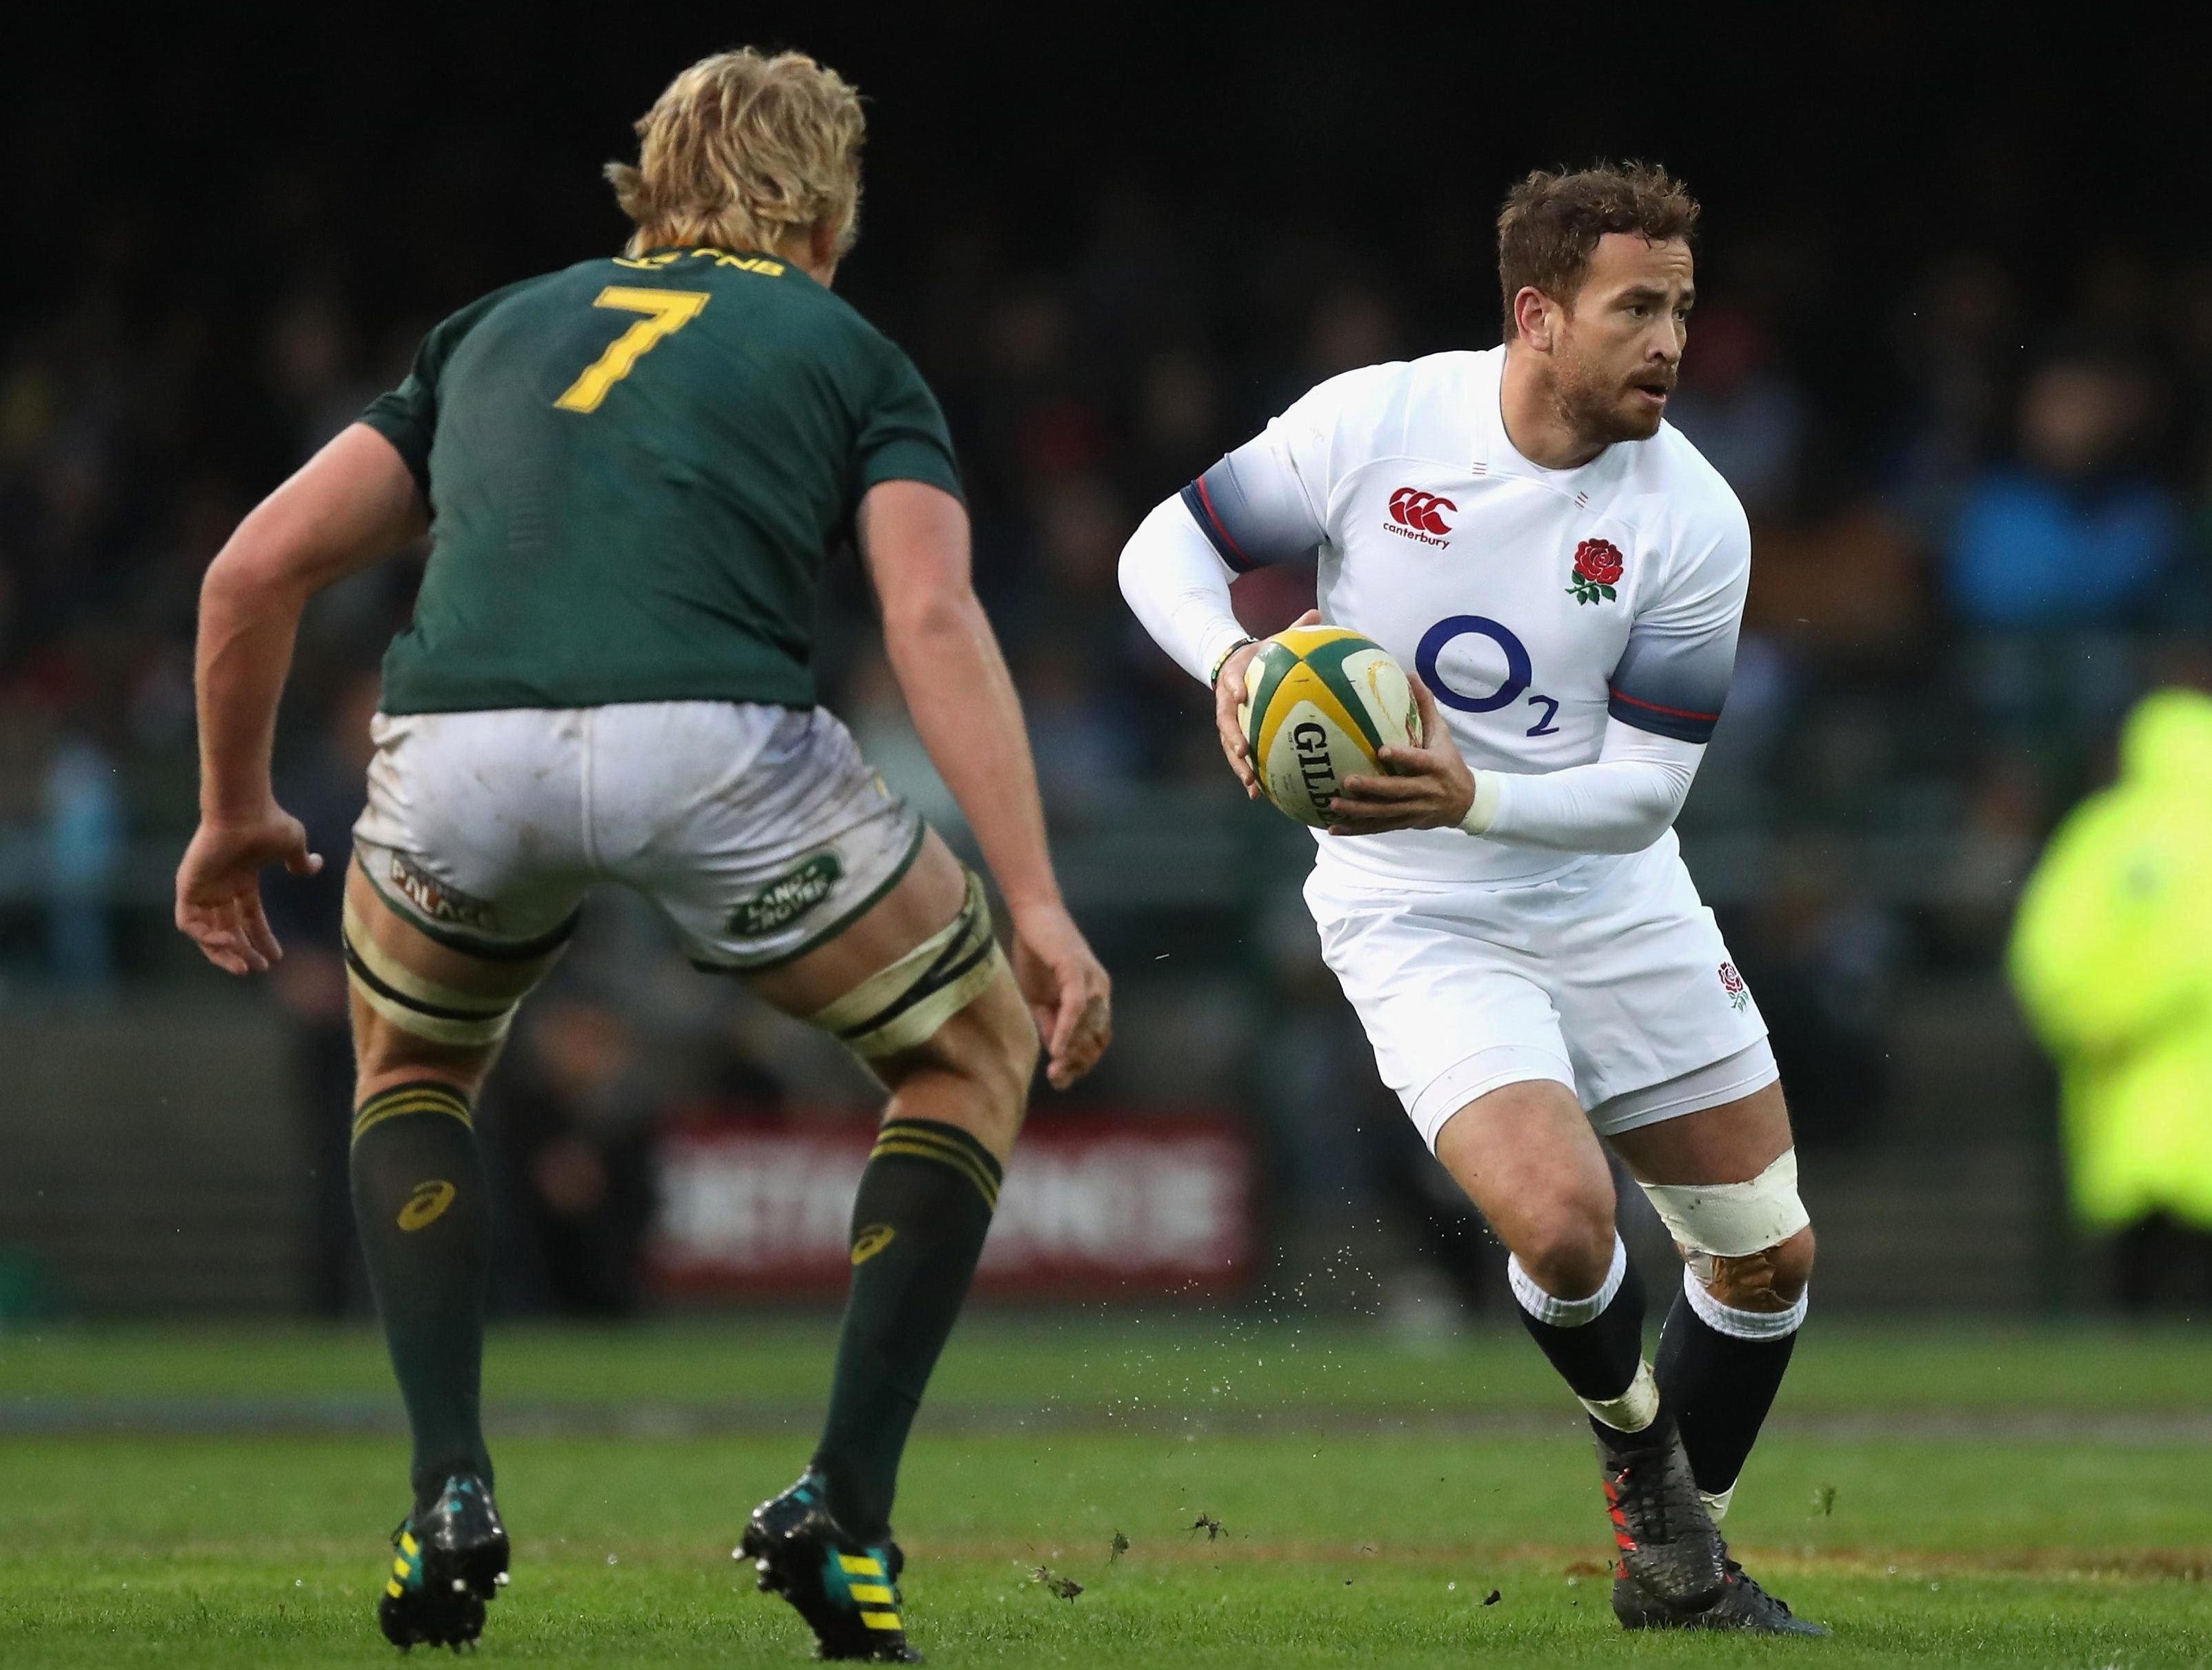 Returning Danny Cipriani impressed - setting up a try for Jonny May with a great kick